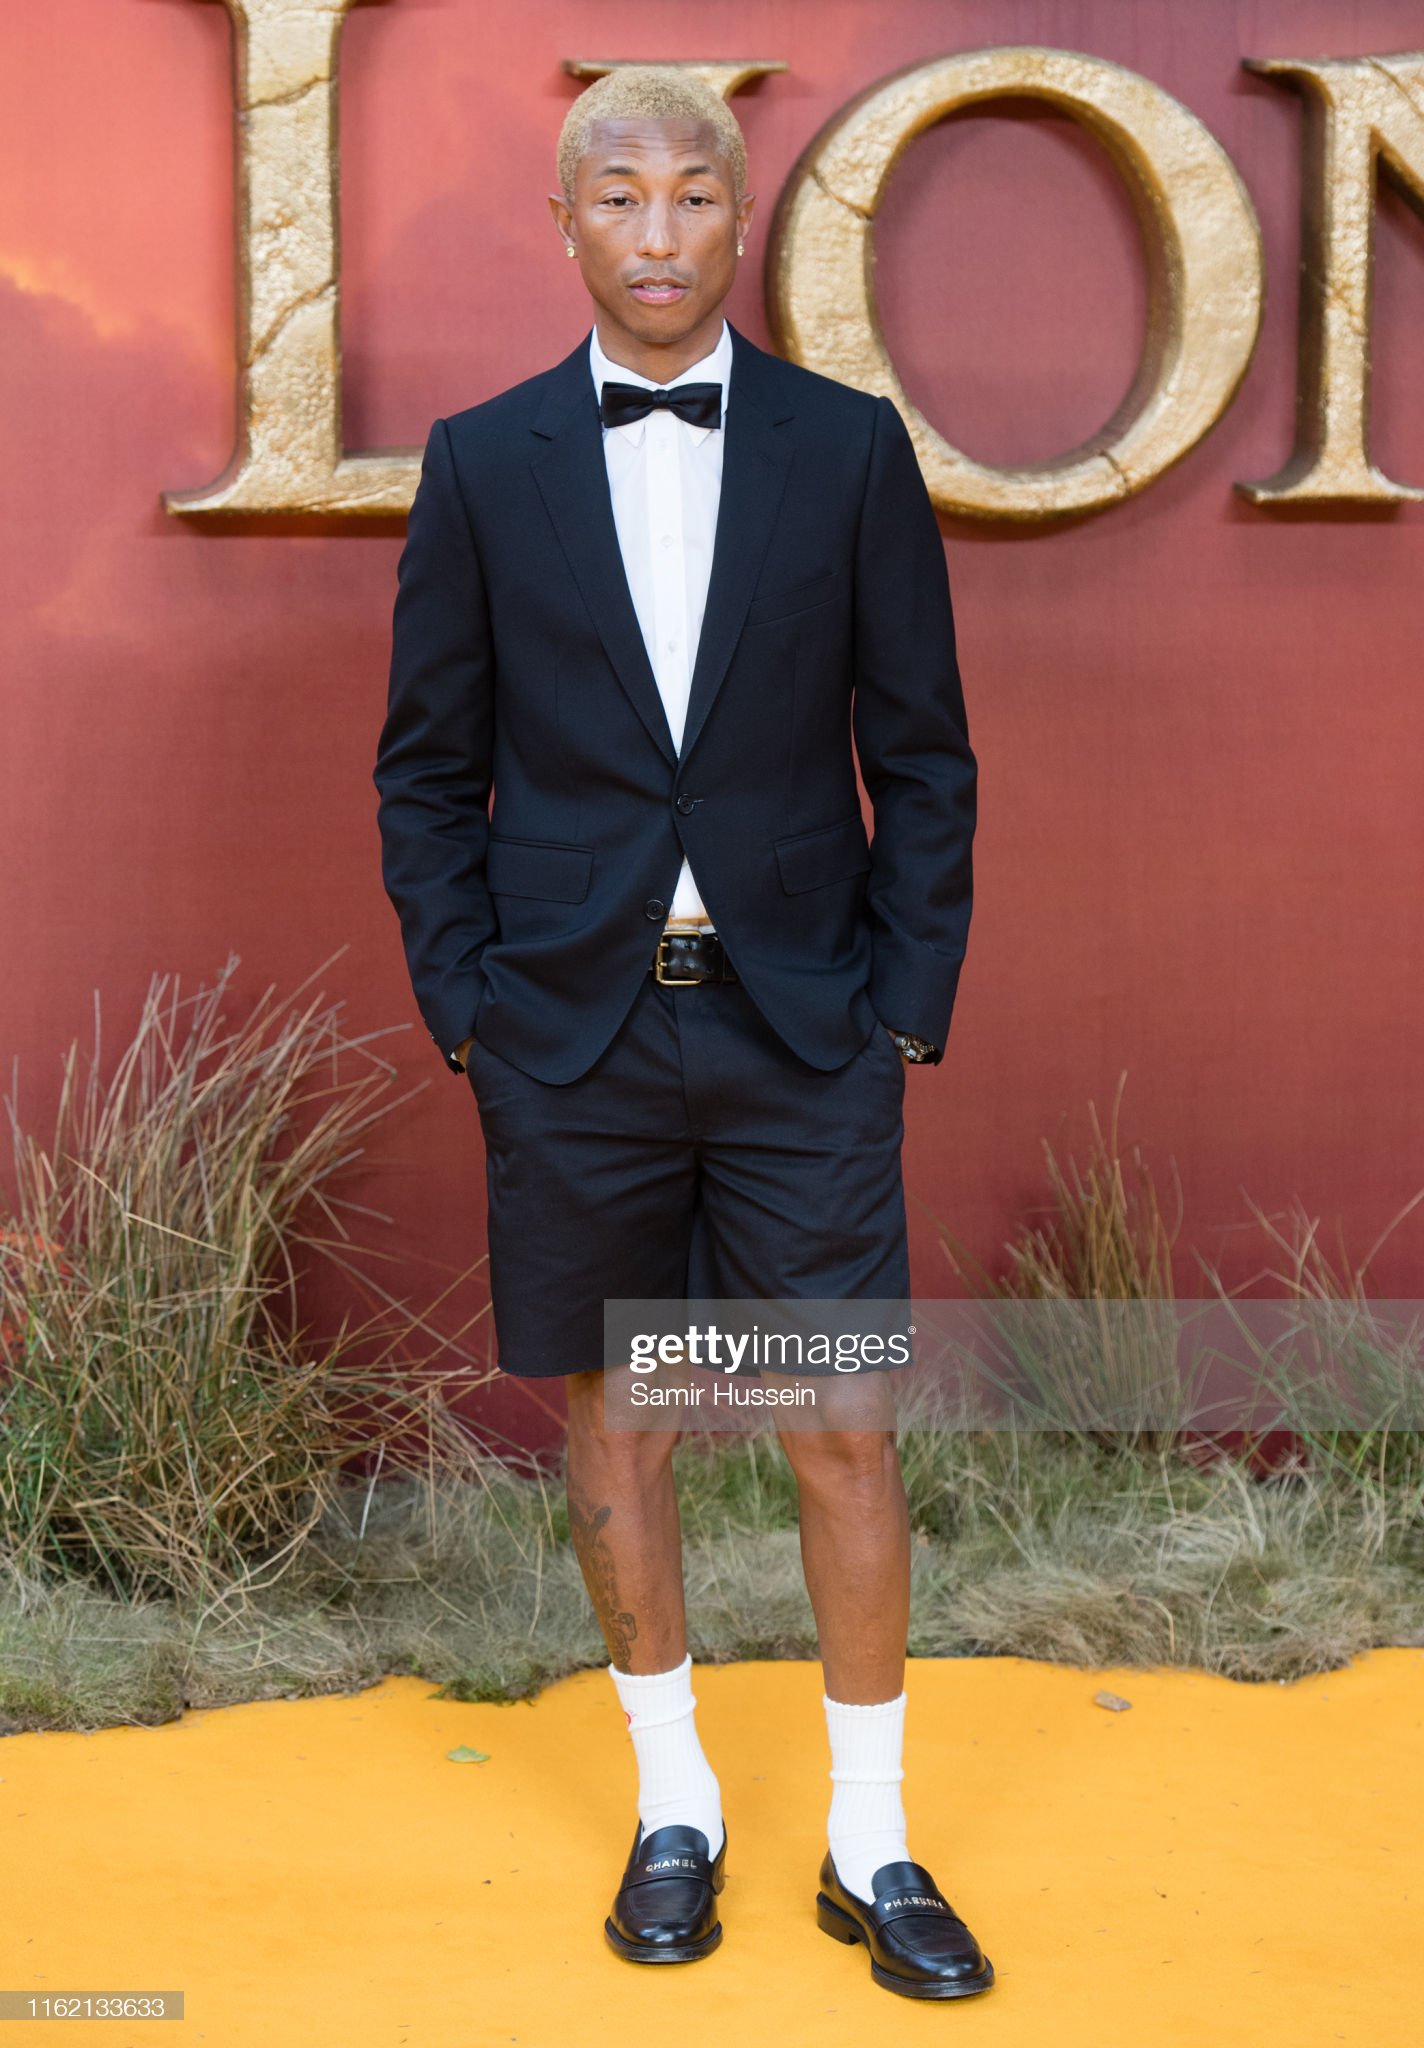 ¿Cuánto mide Pharrell Williams? - Altura - Real height Pharrell-williams-attends-the-lion-king-european-premiere-at-square-picture-id1162133633?s=2048x2048